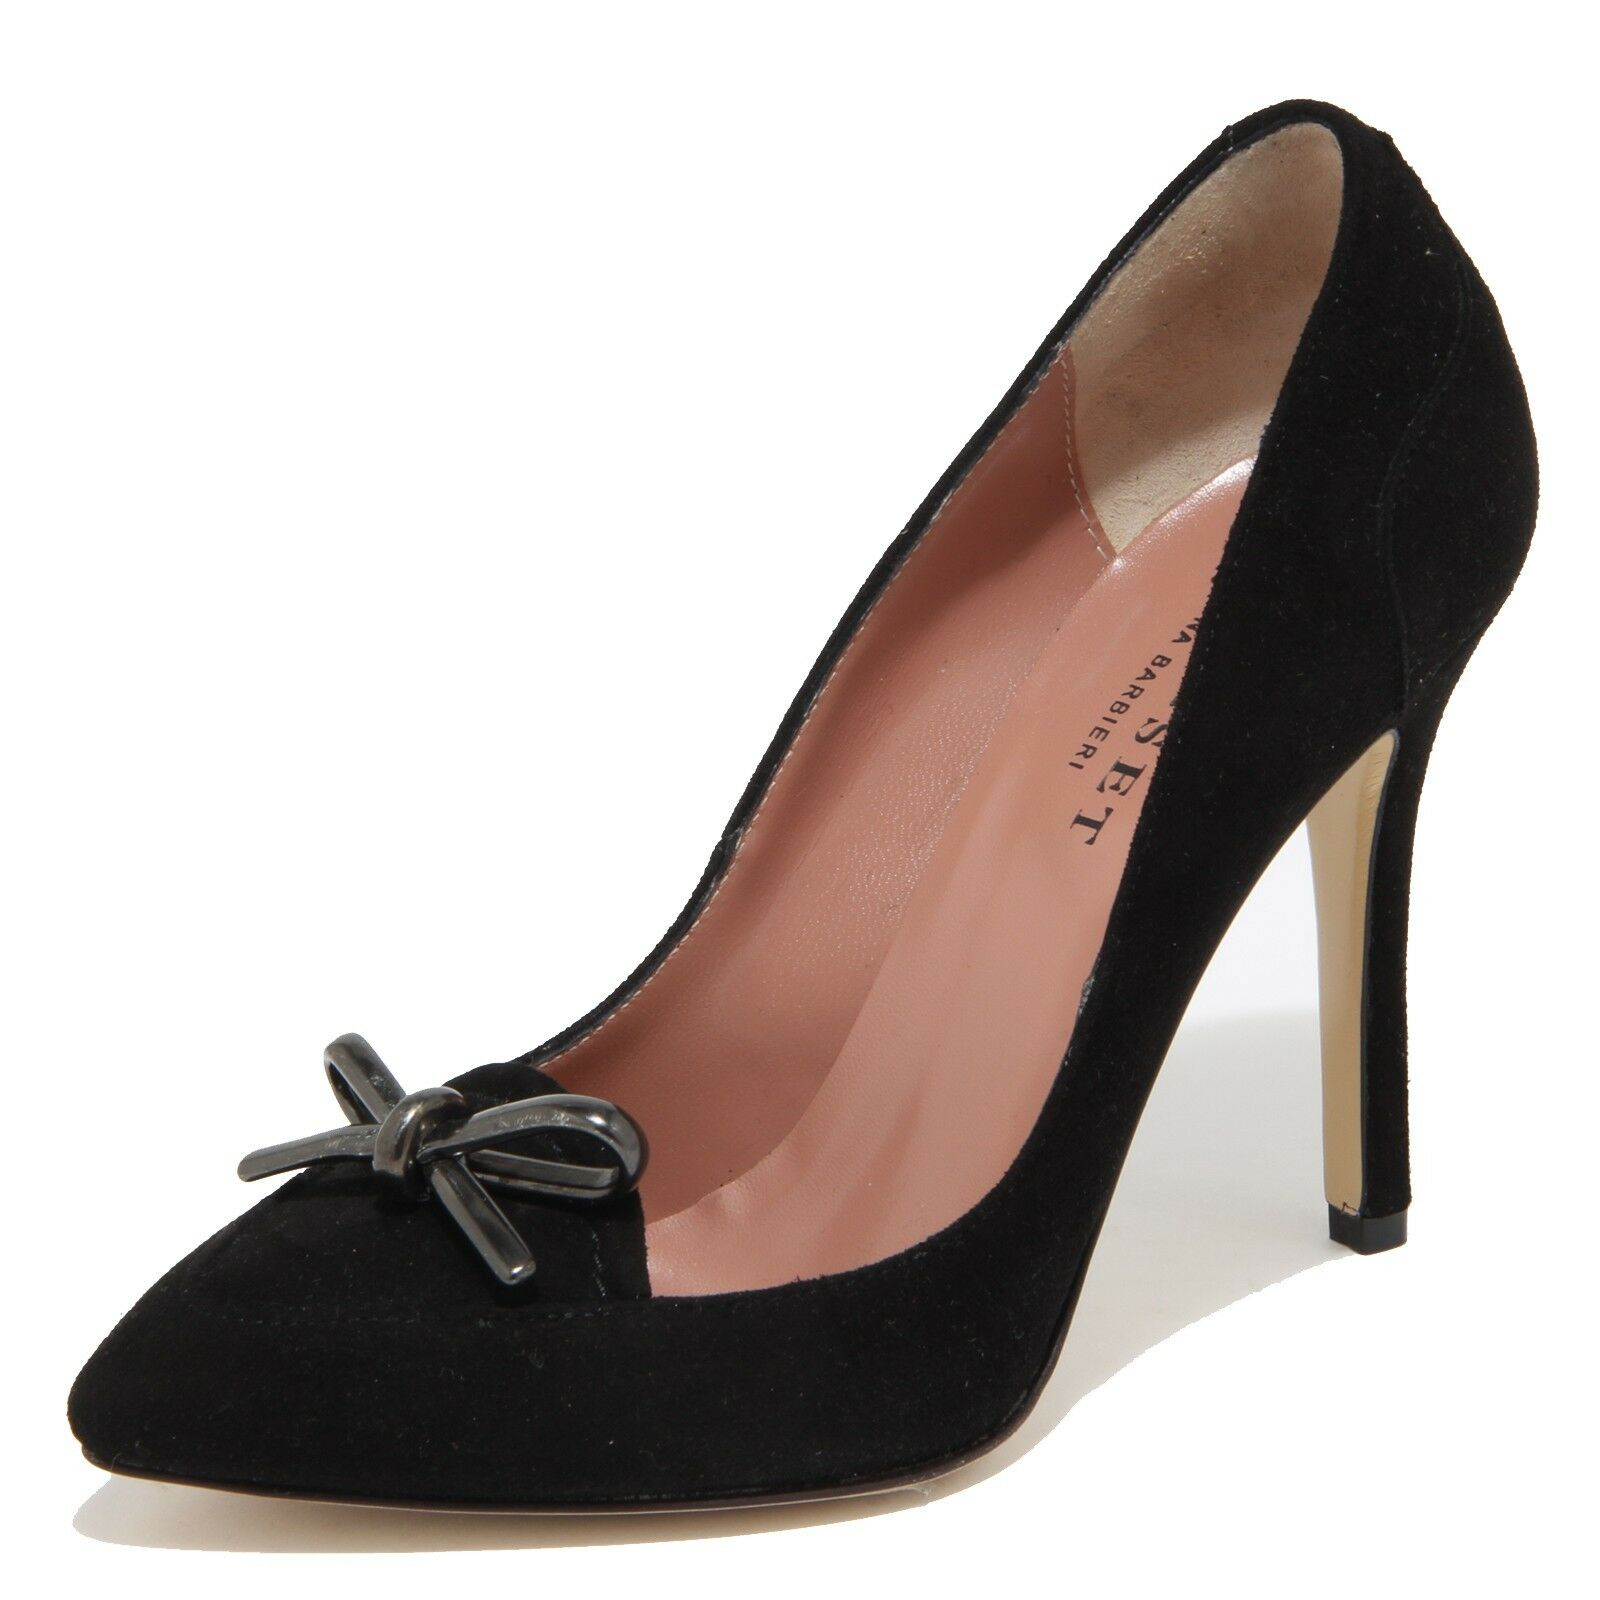 negozio outlet 6296N decollete donna nero TWIN-SET SIMONA BARBIERI scarpe scarpe scarpe scarpe donna  ultimi stili